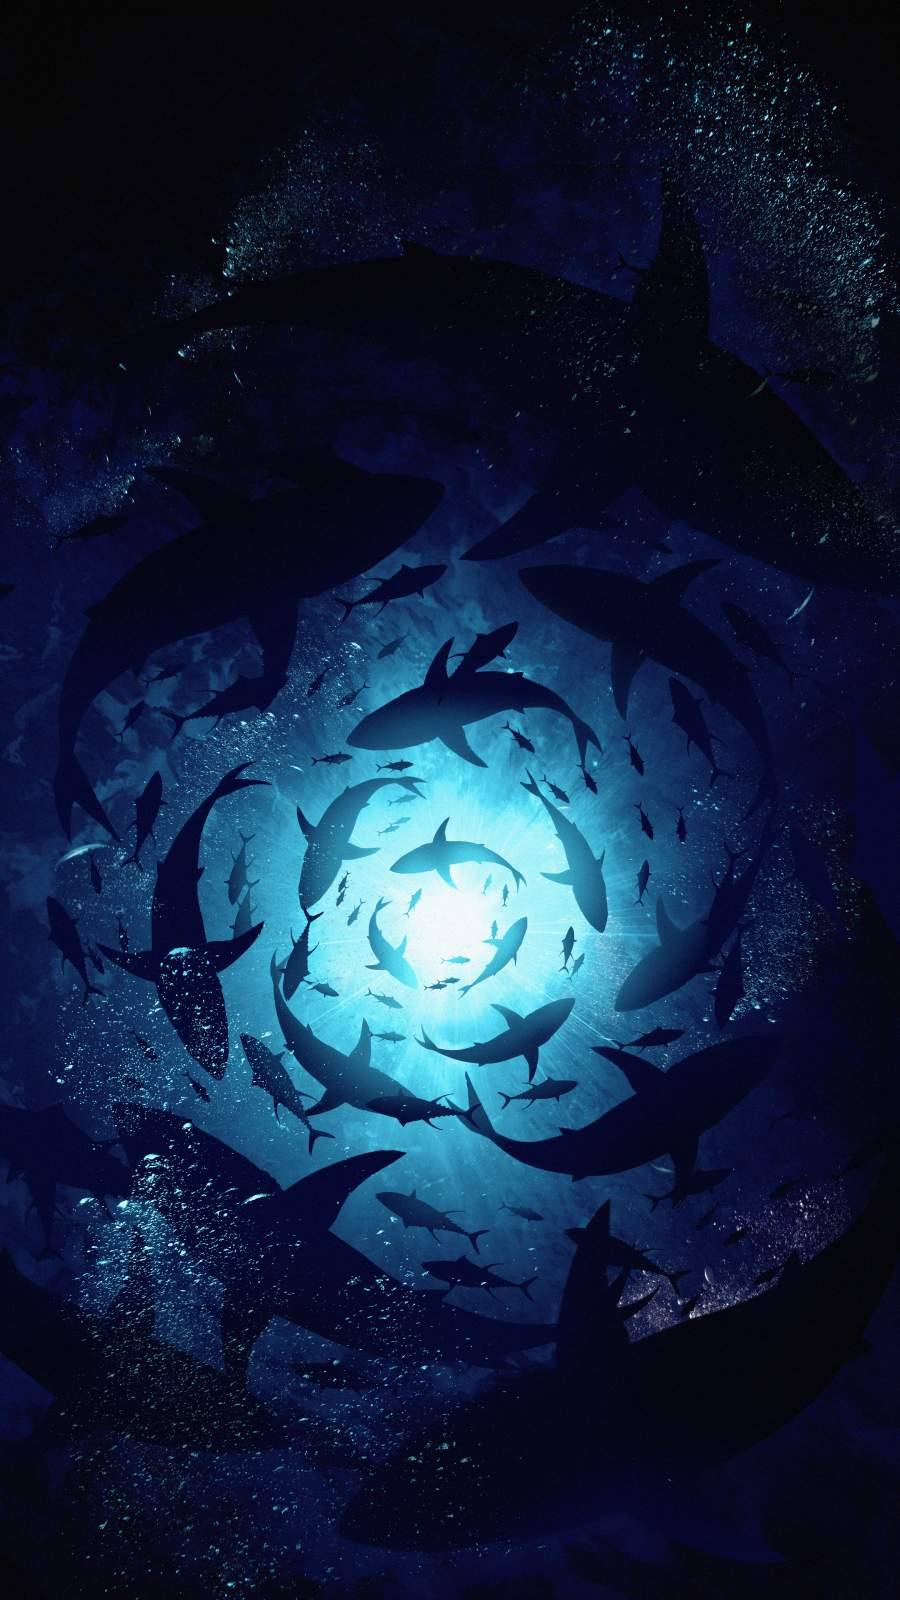 Underwater World iPhone Wallpaper